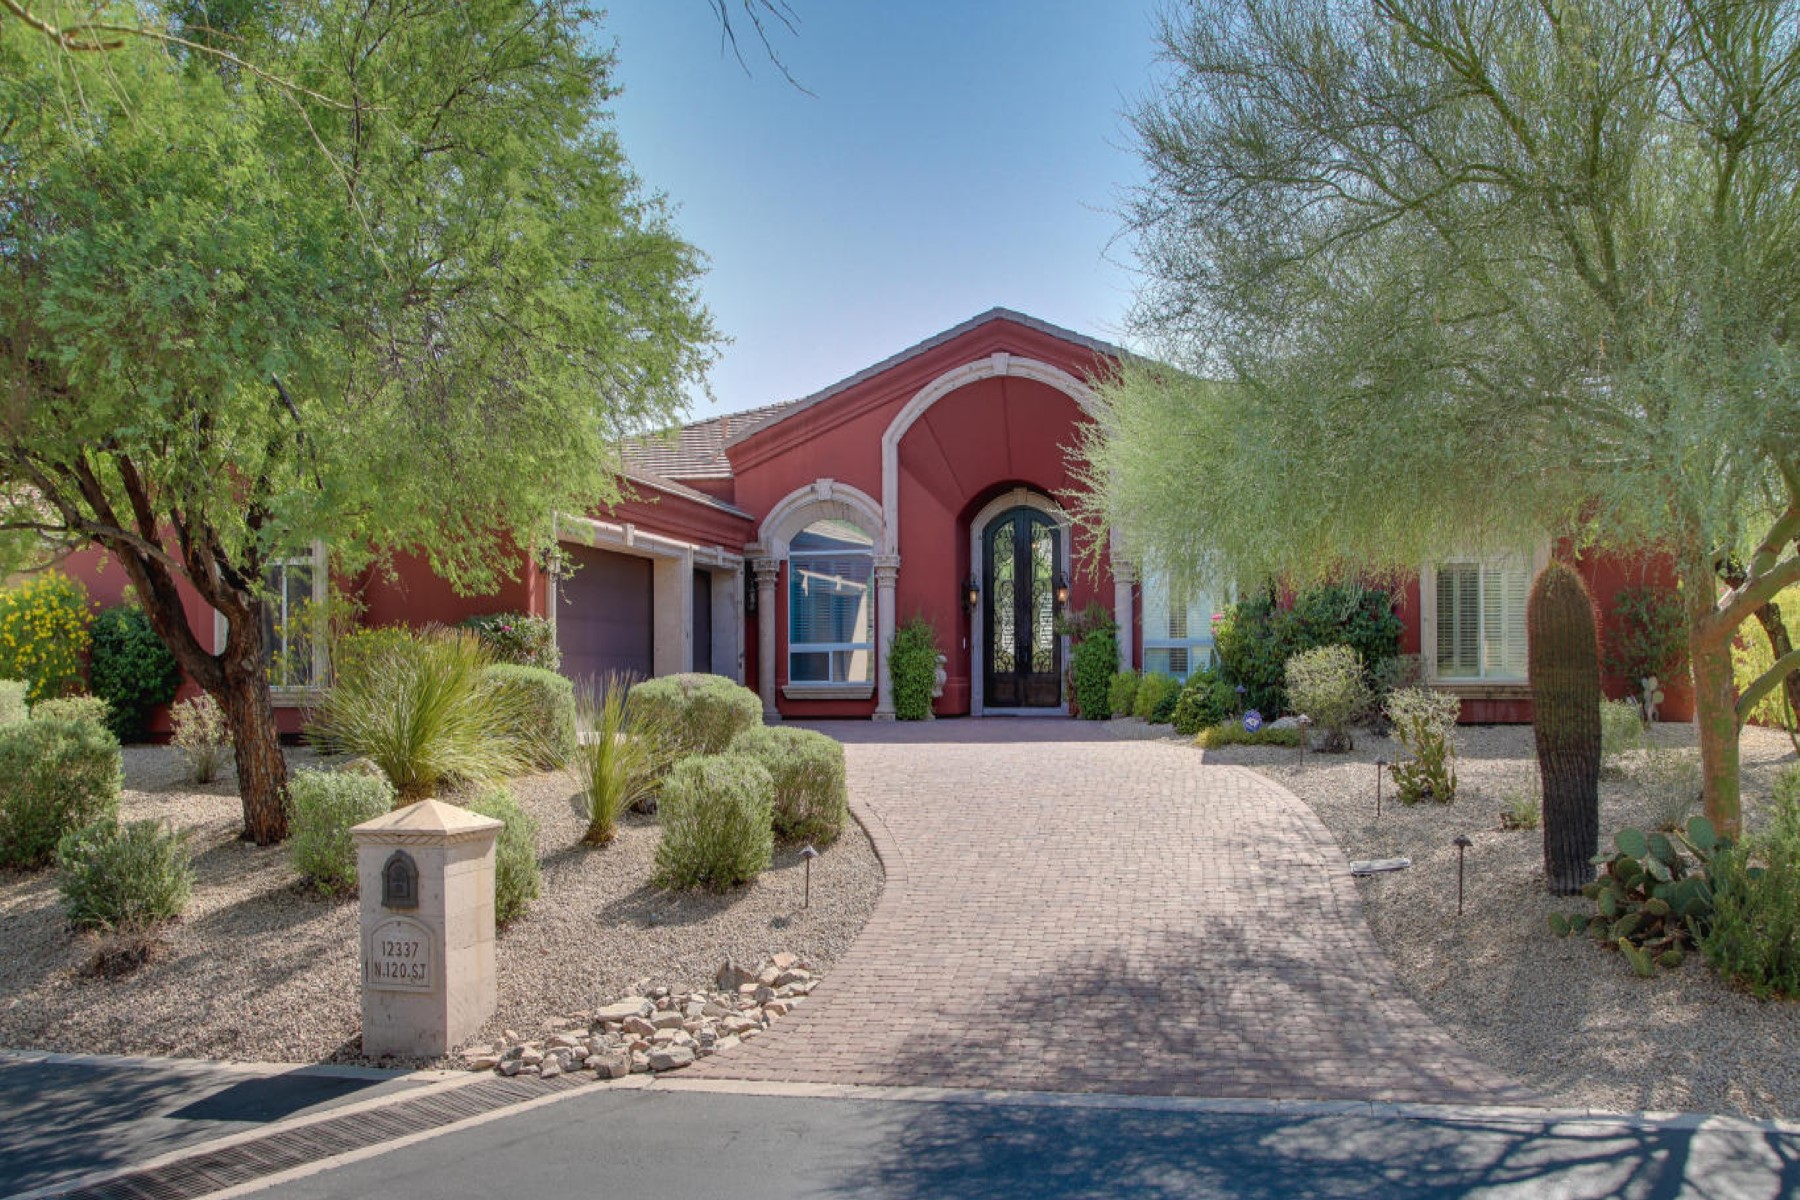 Villa per Vendita alle ore Home perched on a gentle slope with the foothills as backdrop. 12337 N 120TH ST Scottsdale, Arizona 85259 Stati Uniti